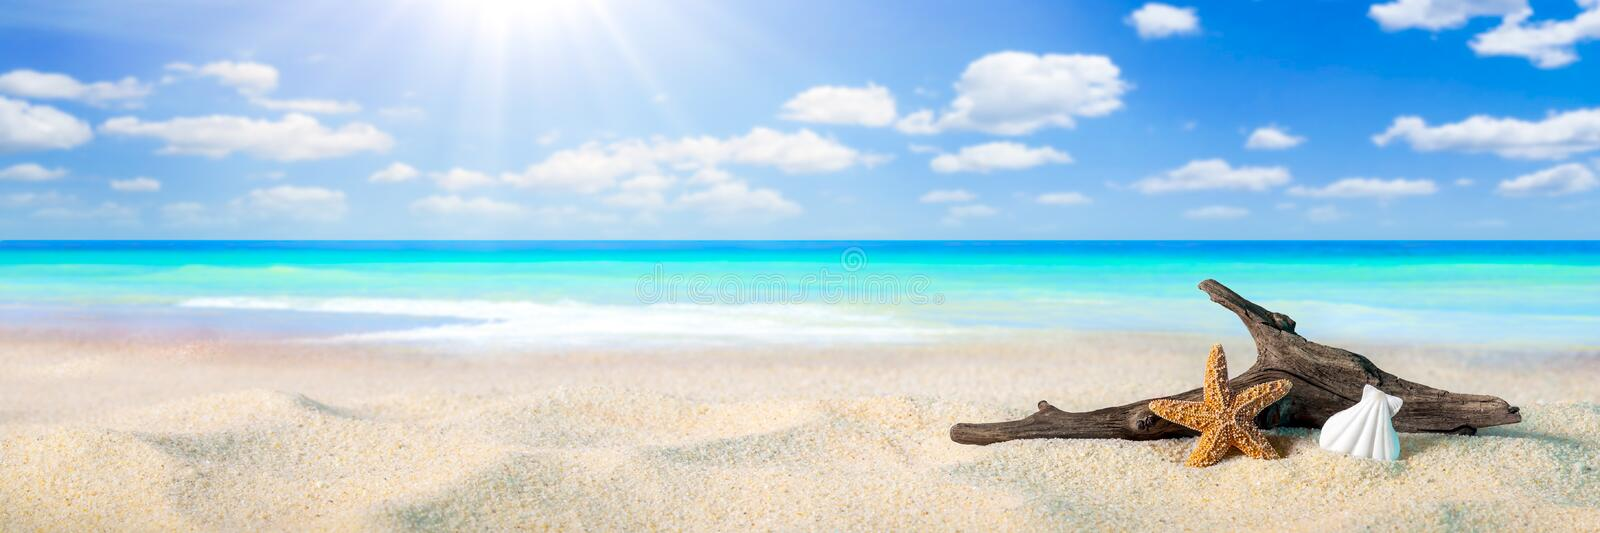 Sunshine On The Beach. Starfish, Shell, And Driftwood On Sandy Seashore With Tropical Water, Clouds And Sunshine - Beach Holiday Background royalty free stock photography